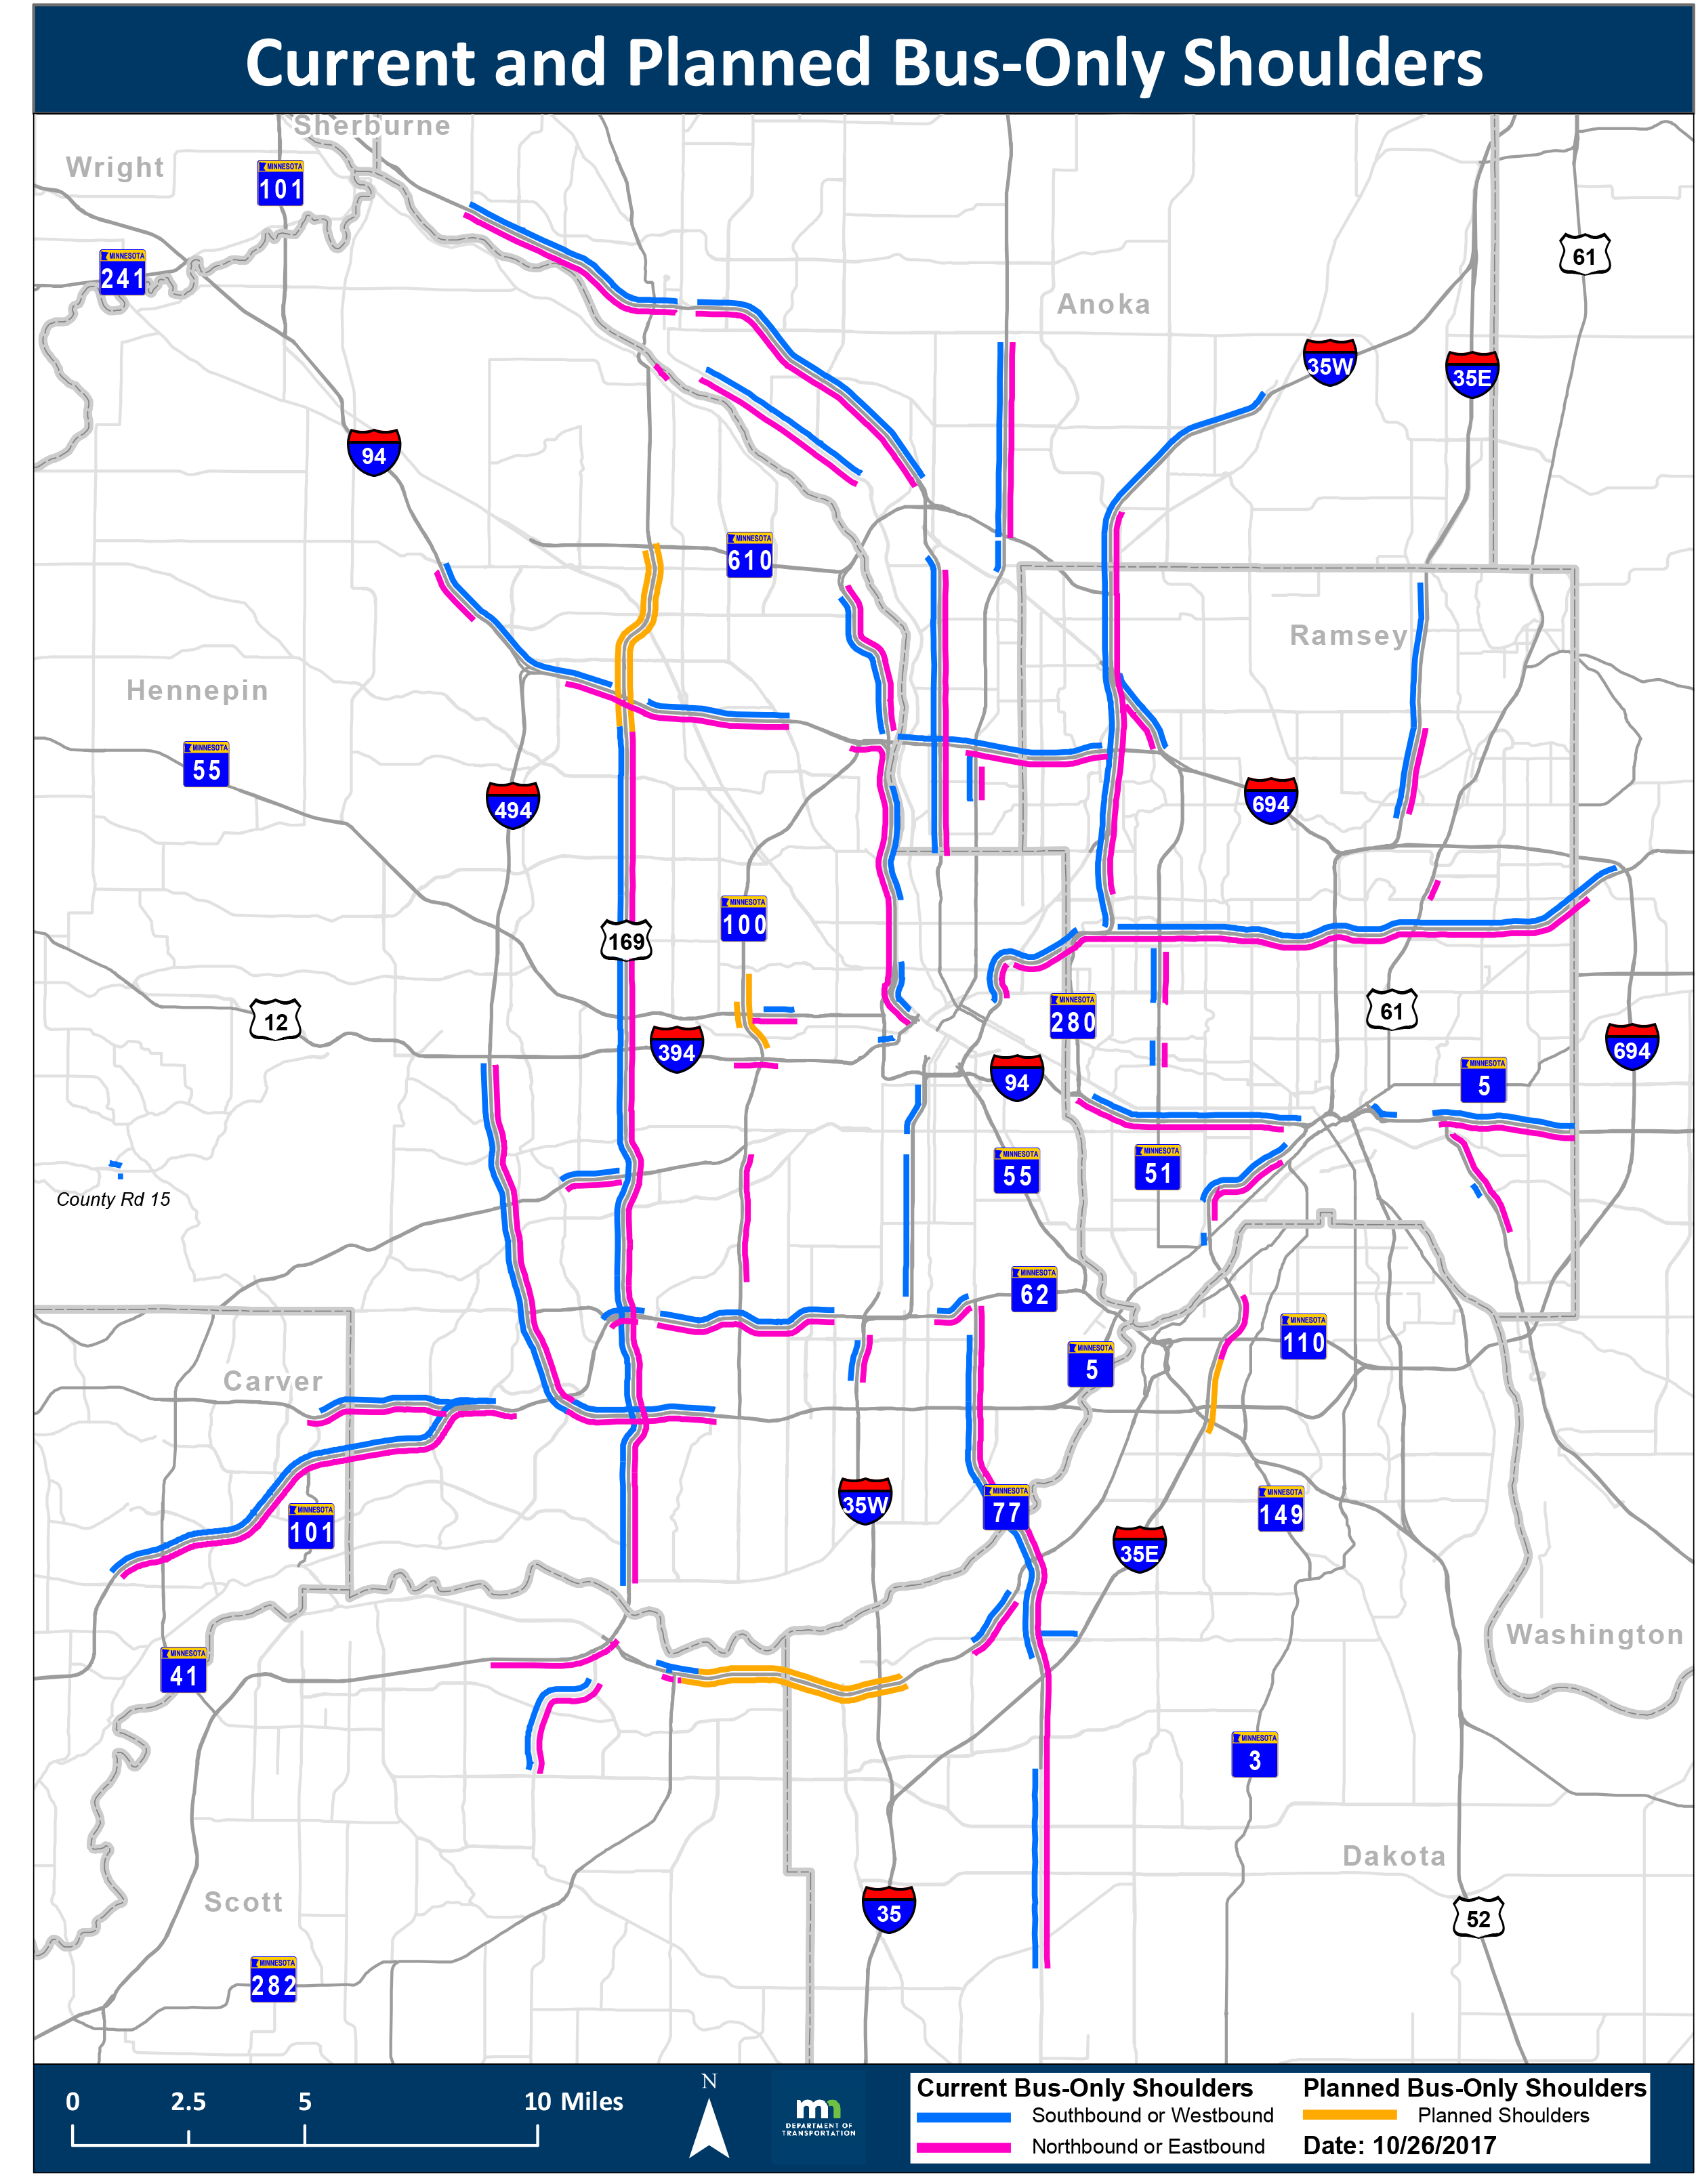 Bus-only shoulder map